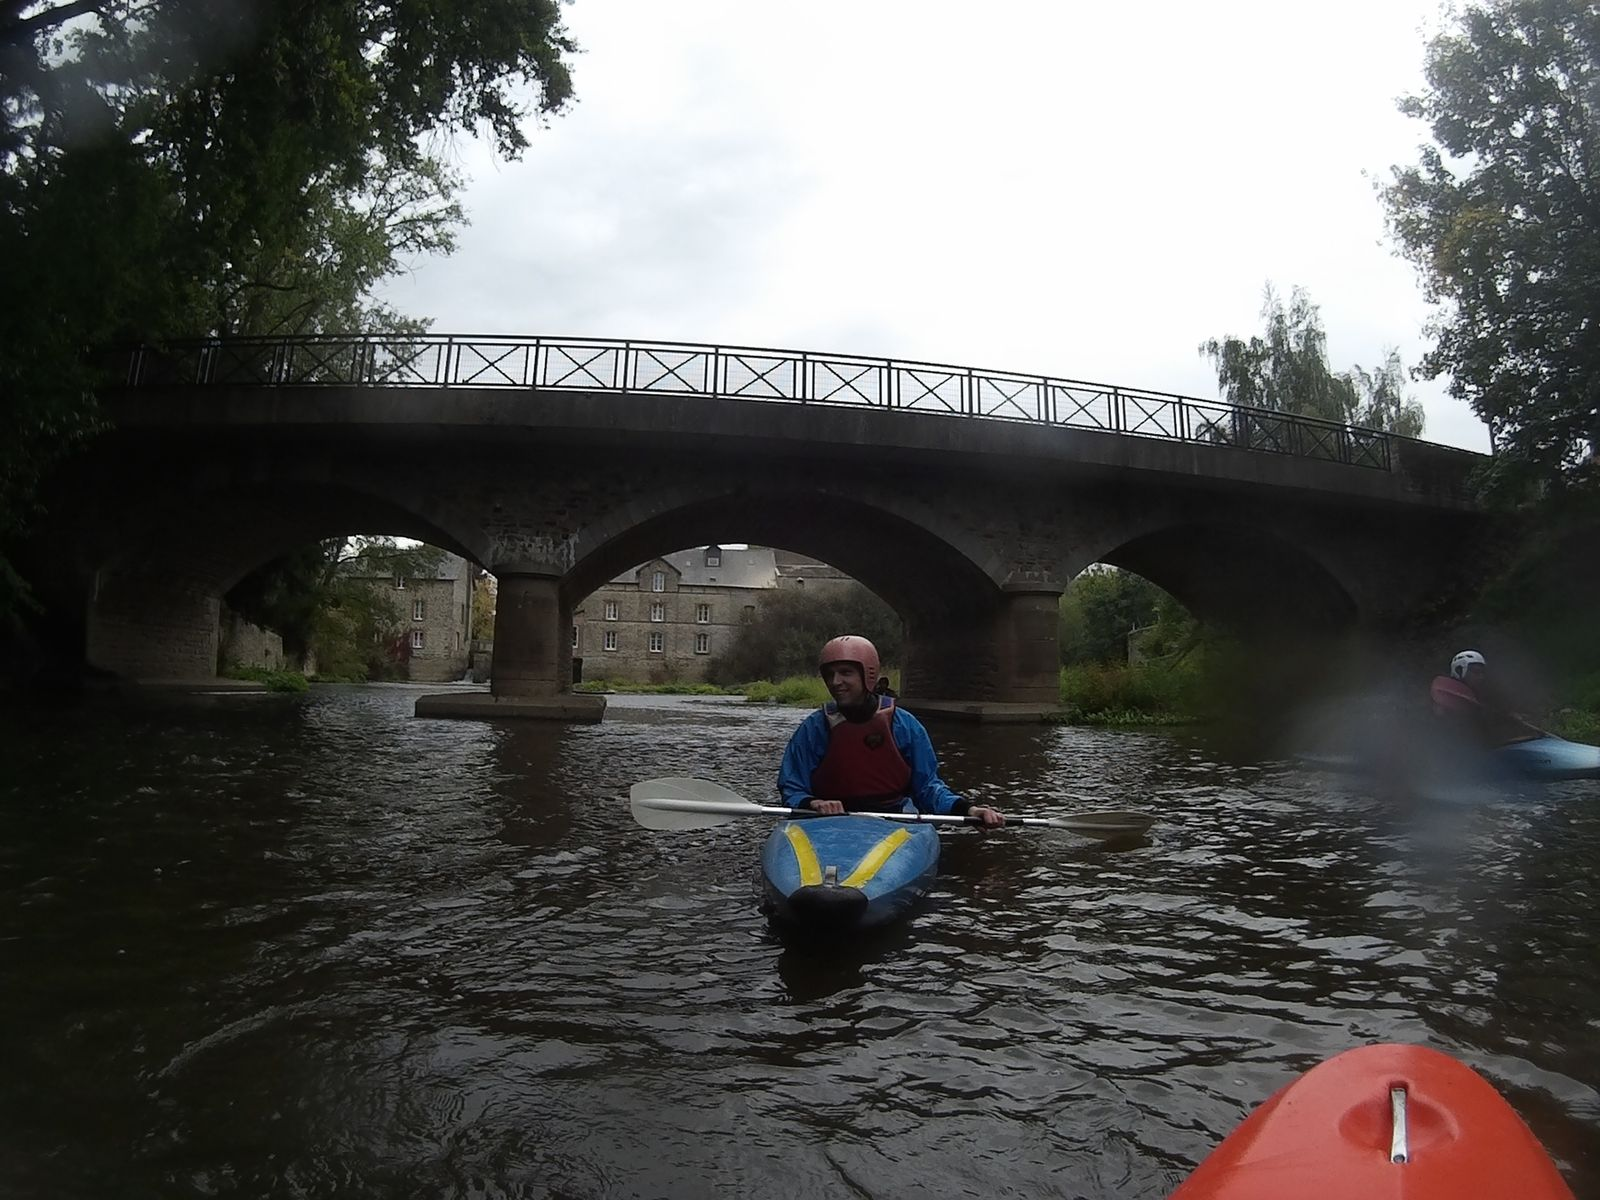 20151003-kayak-base-cesson-017.jpg